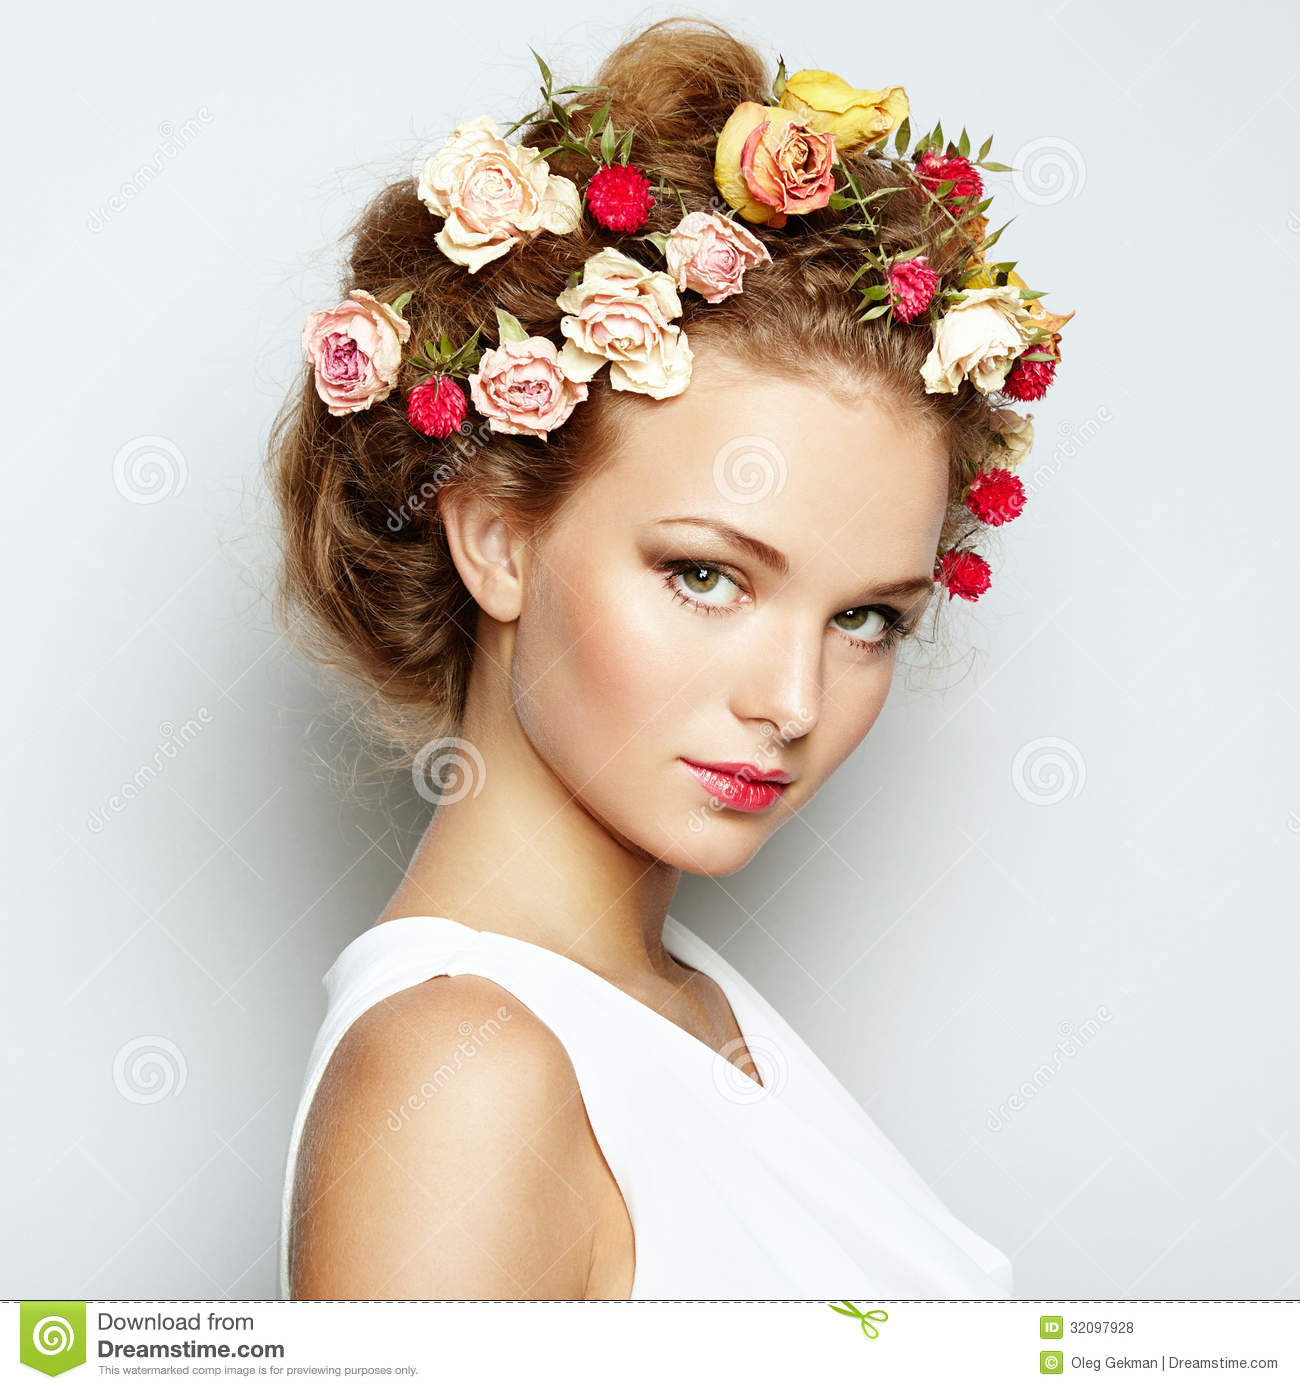 Beautiful woman with flowers perfect face skin beauty portrait beautiful beauty fashion portrait woman dhlflorist Gallery